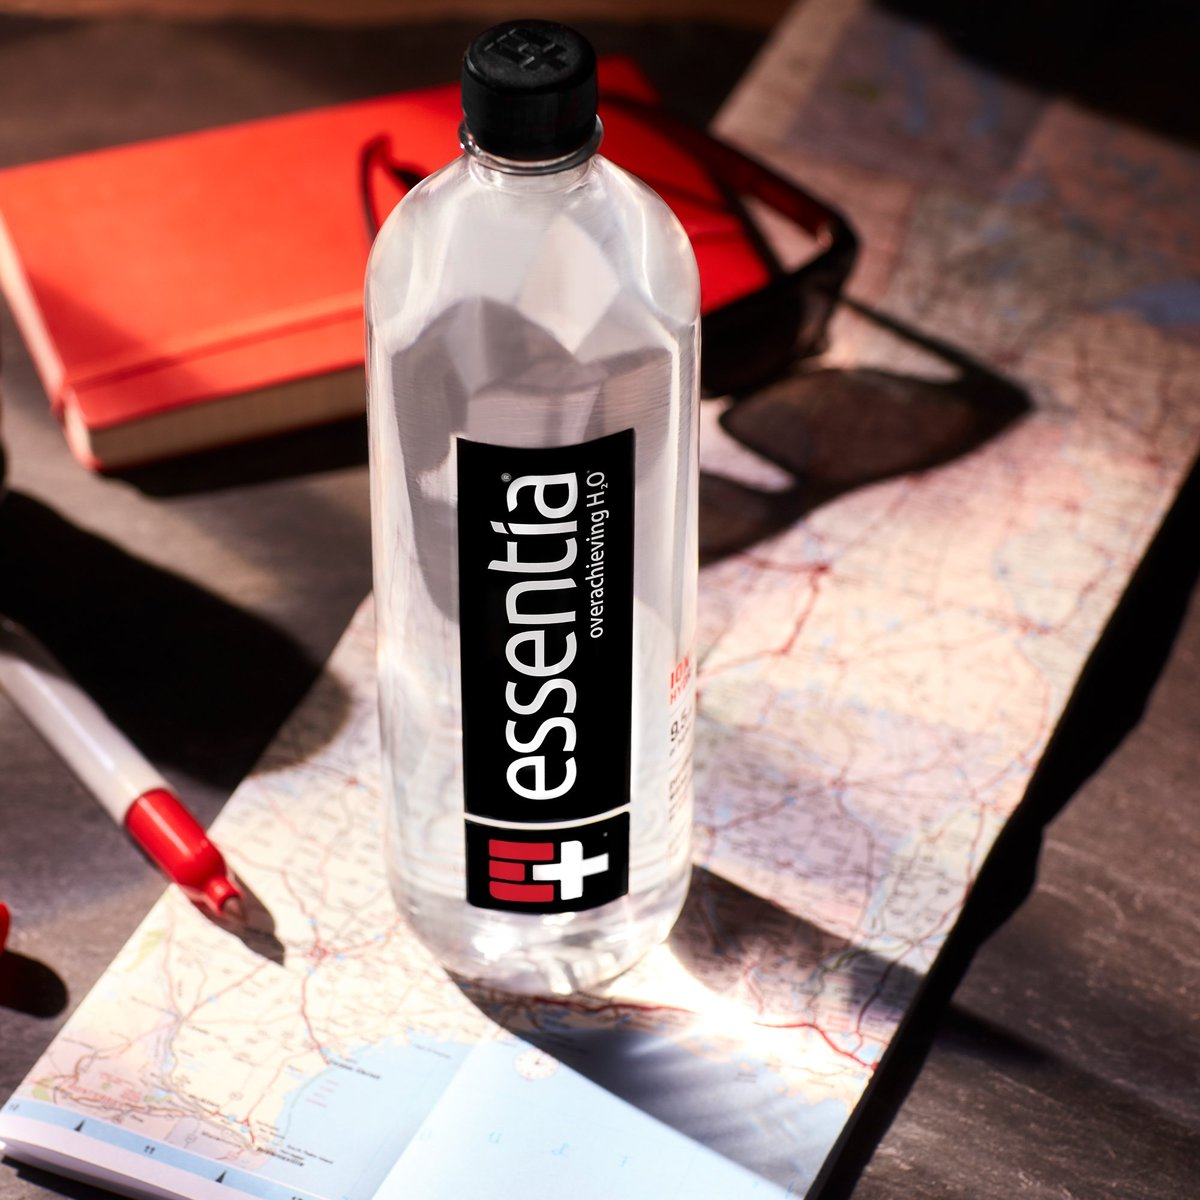 Road trip! Click to find supercharged ionized alkaline water wherever you may go. https://t.co/TEgiXijx6h #OverachievingH2O https://t.co/6a8rEYFkvL